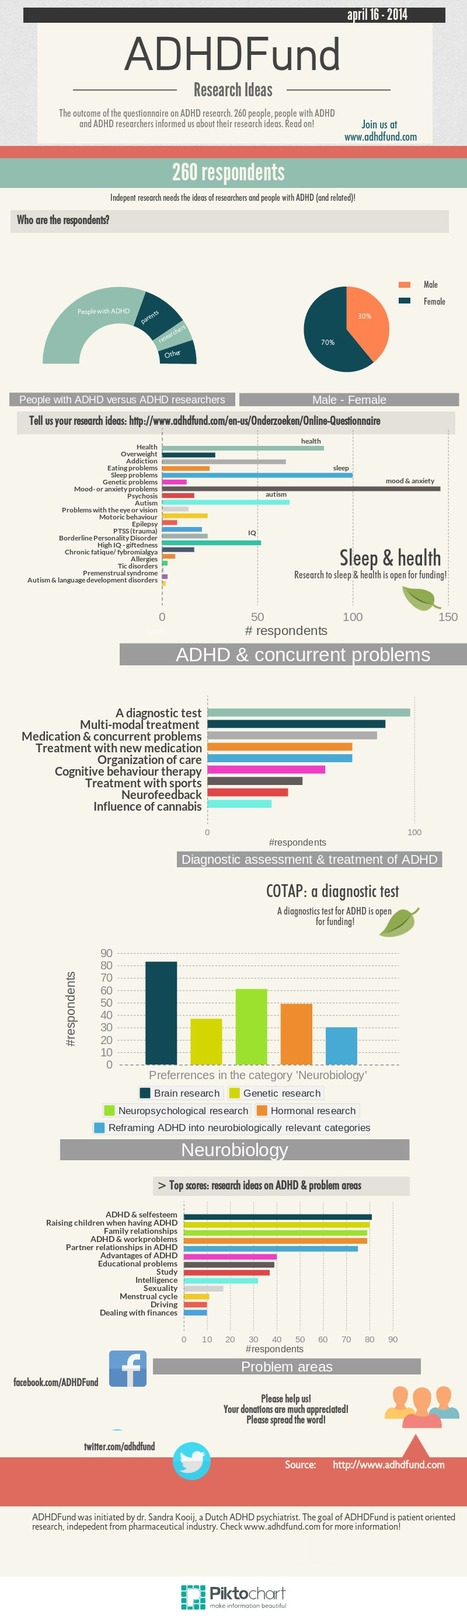 ADHDFund update 16-04-2014 'Your Research Ideas' survey (www.adhdfund.com) | Health Trends and Advancements | Scoop.it